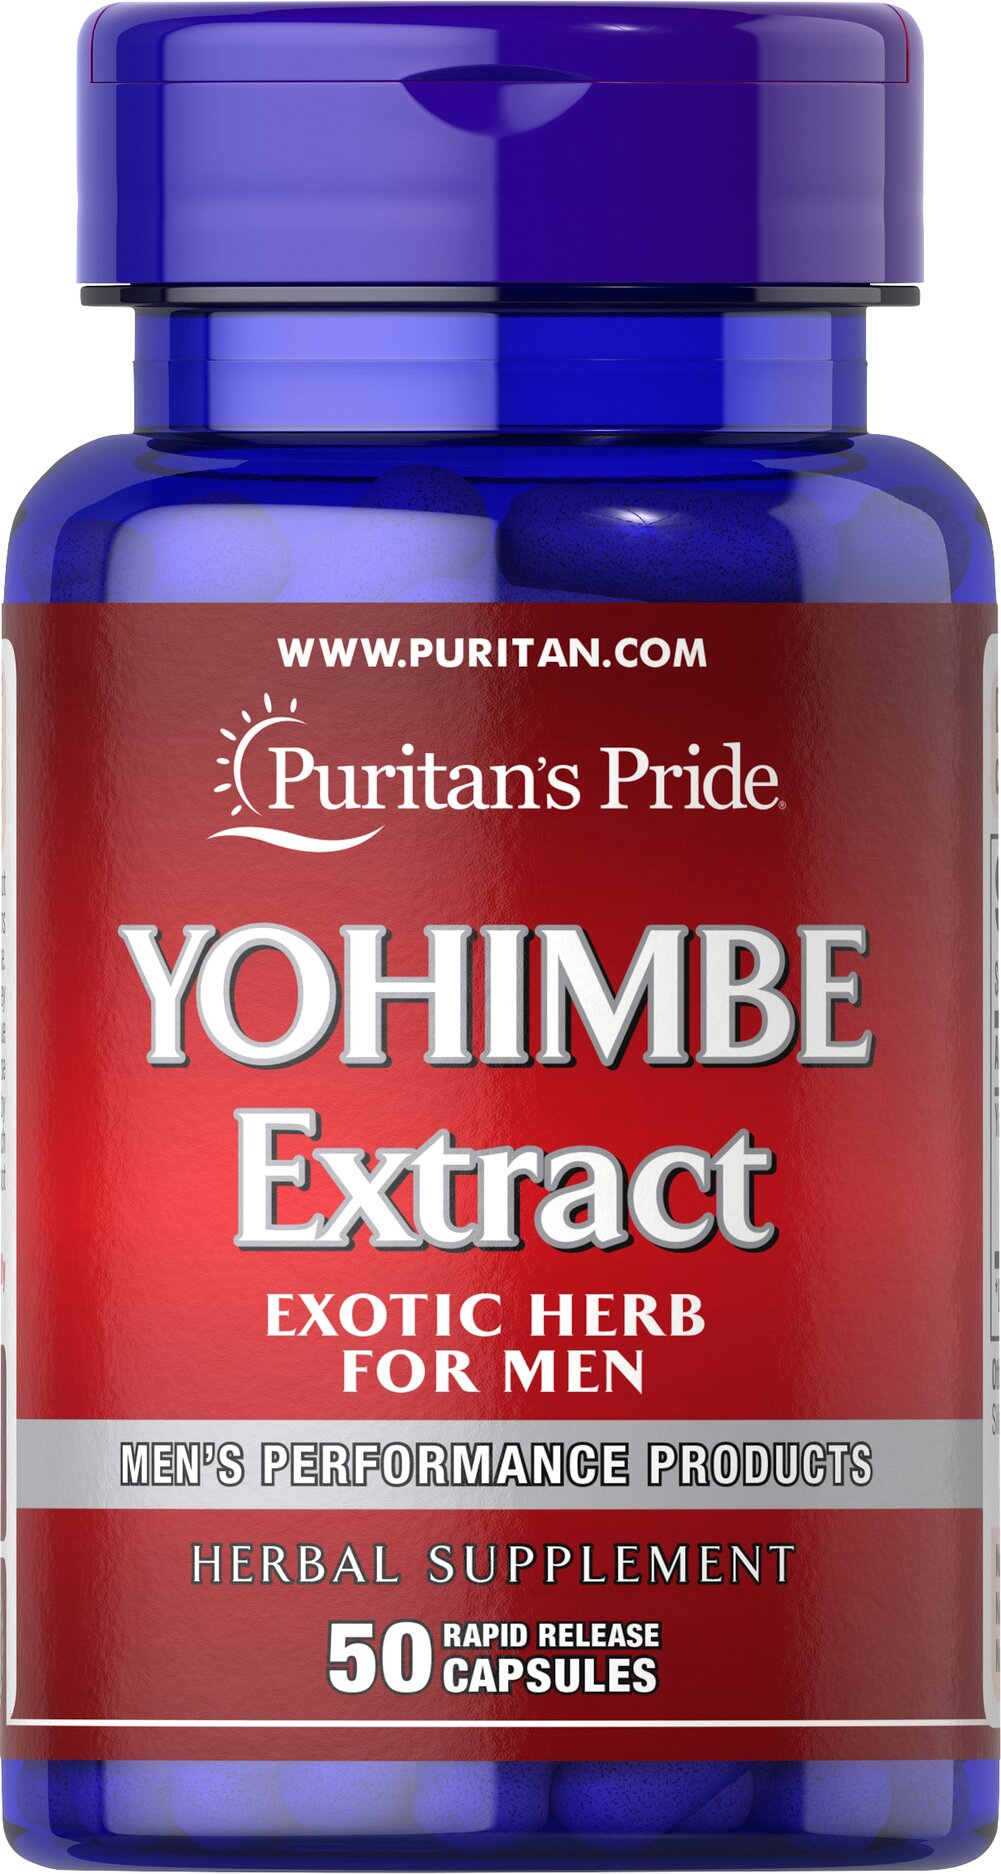 Yohimbe 2000 mg <p>2000 mg 4:1 Extract</p><p>We are proud to bring you Yohimbe 2,000 mg. Look to Puritan's Pride for high quality products and great nutrition at the best possible prices.</p> 50 Capsules 2000 mg $11.99